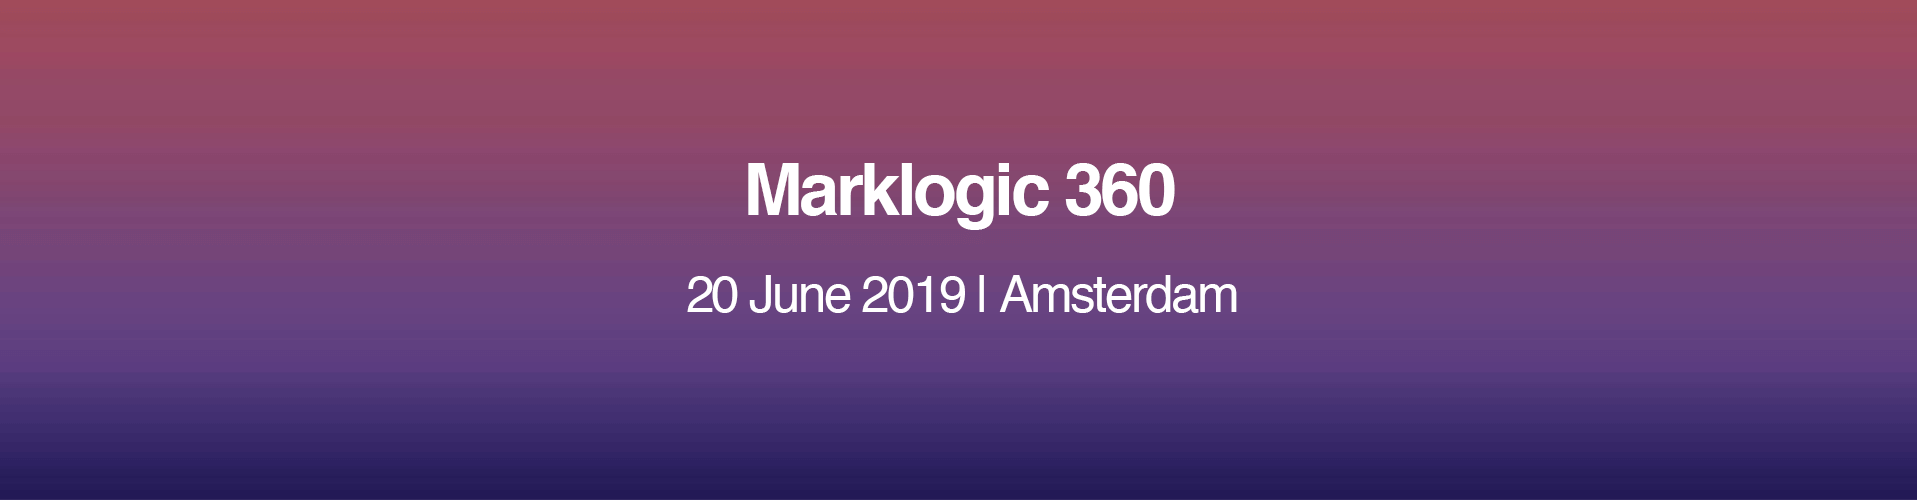 Marklogic-360-banner-website